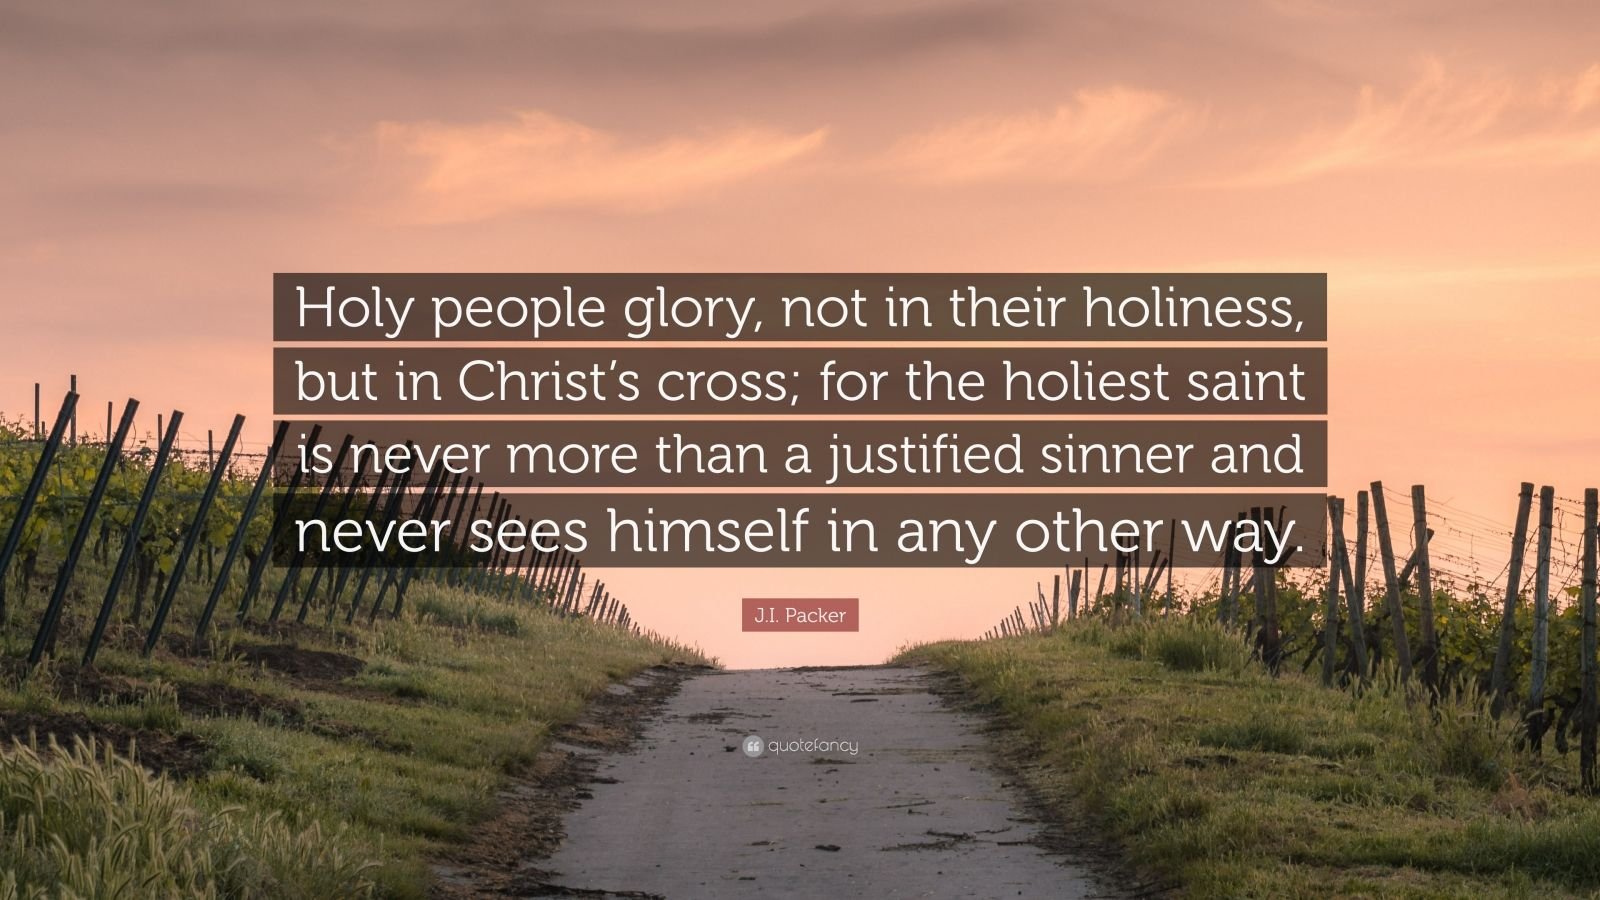 "J.I. Packer Quote: ""Holy people glory, not in their holiness, but in Christ's cross; for the holiest saint is never more than a justified sinner and never sees himself in any other way."""